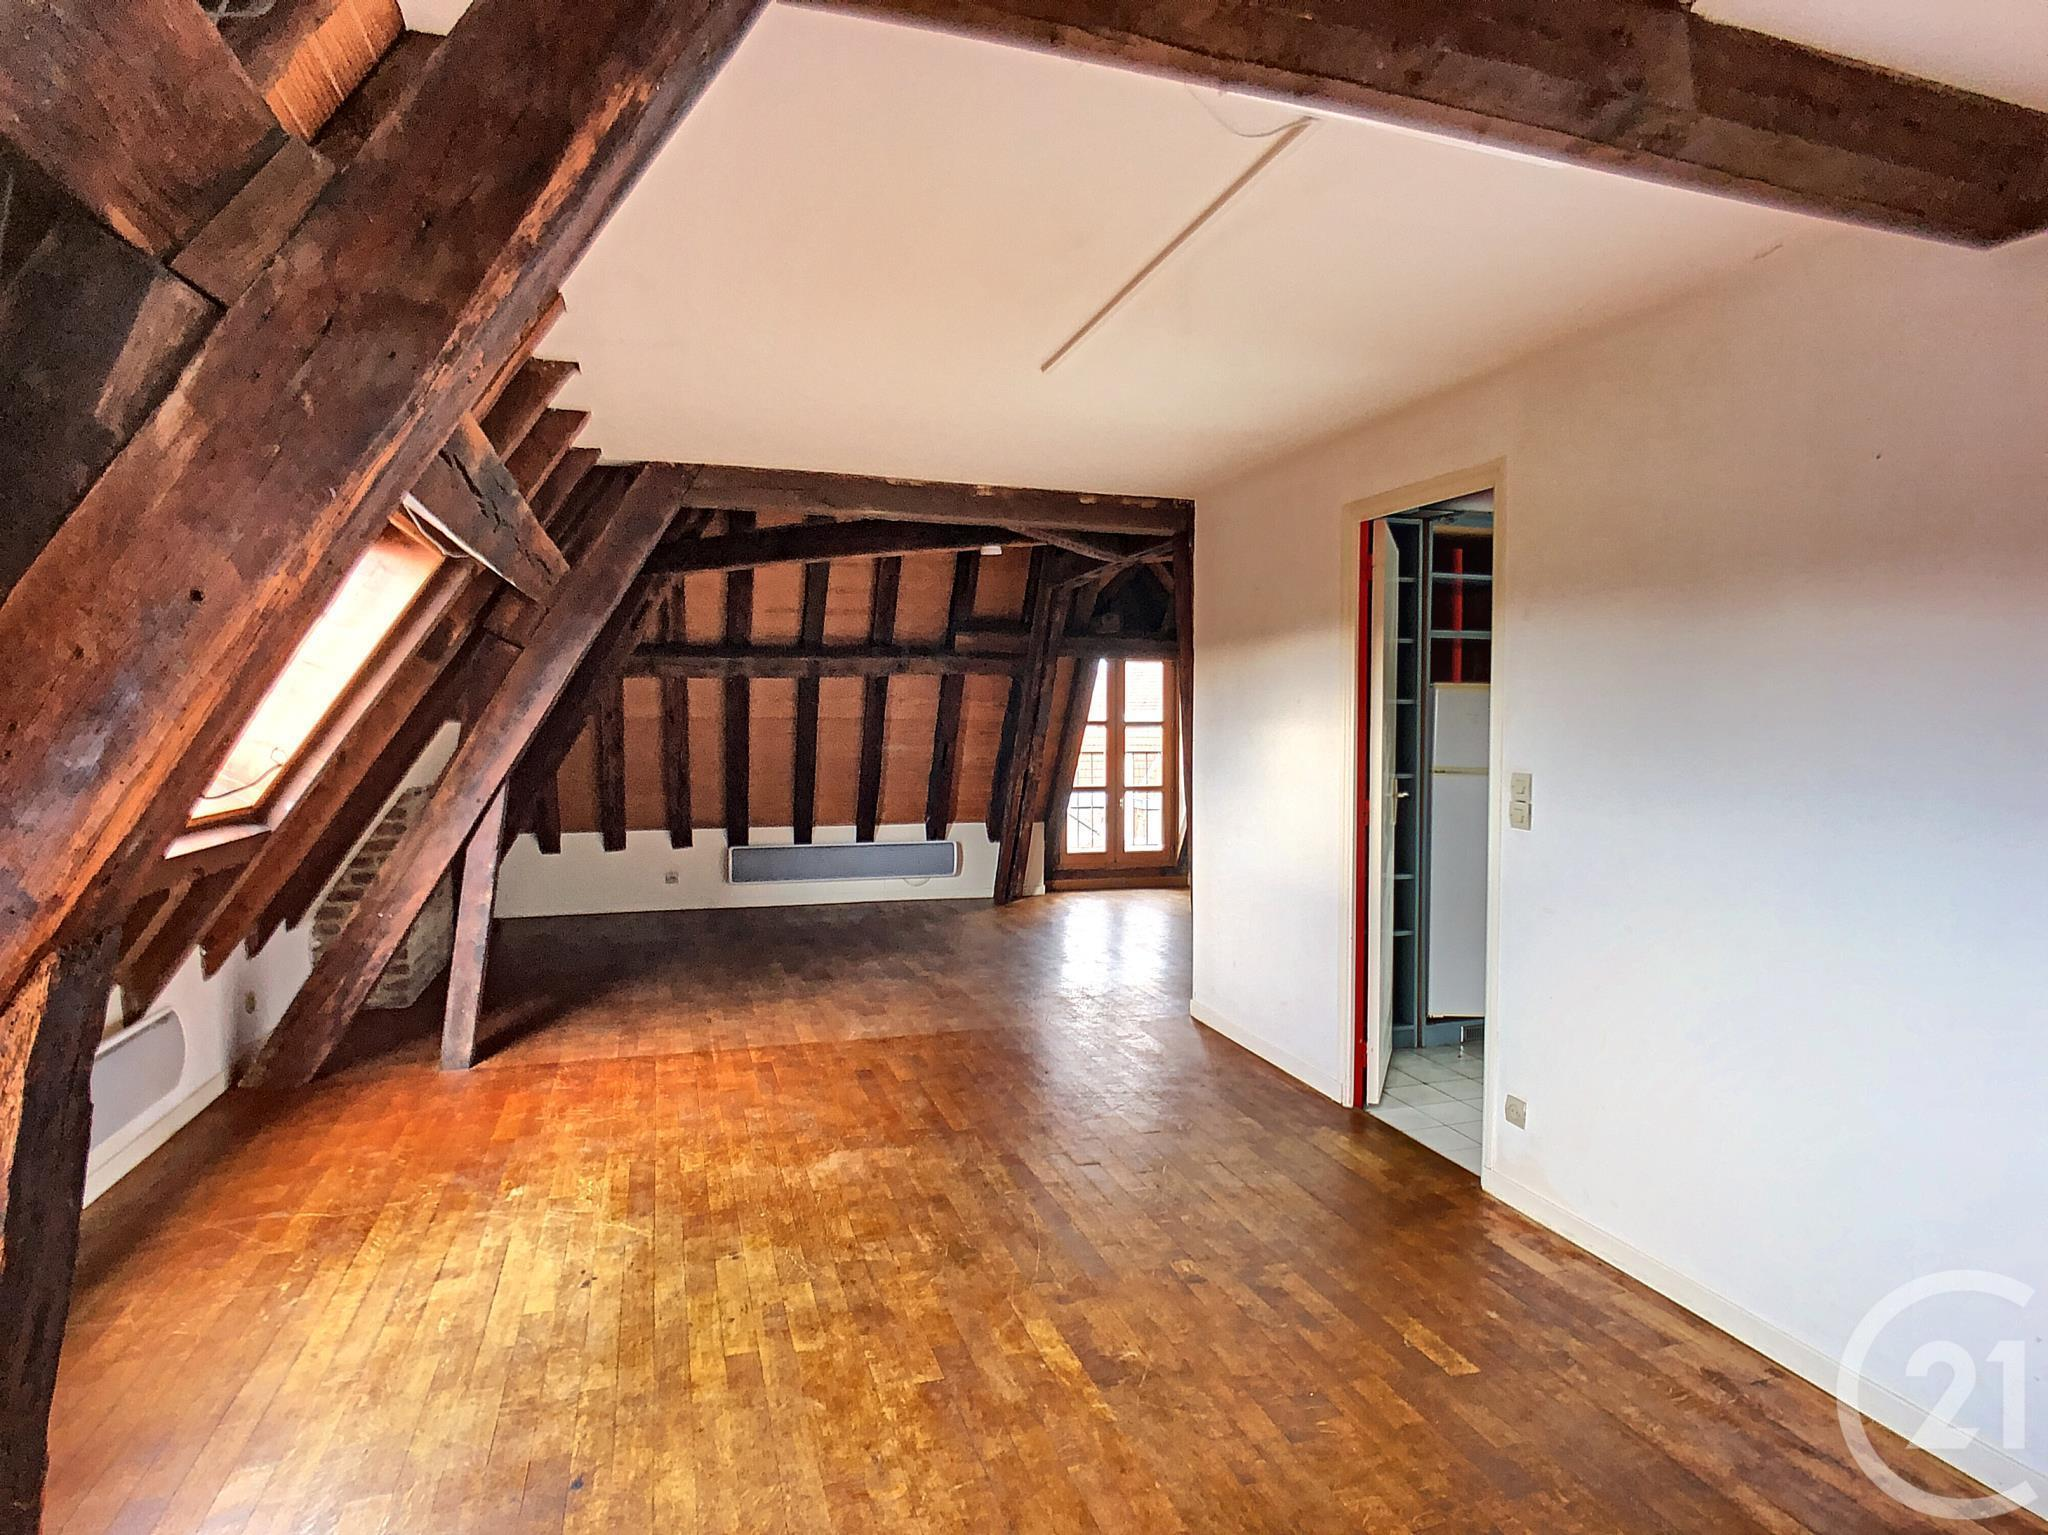 Appartement F6 à louer - 6 pièces - 230,0 m2 - TROYES - 10 - CHAMPAGNE-ARDENNE